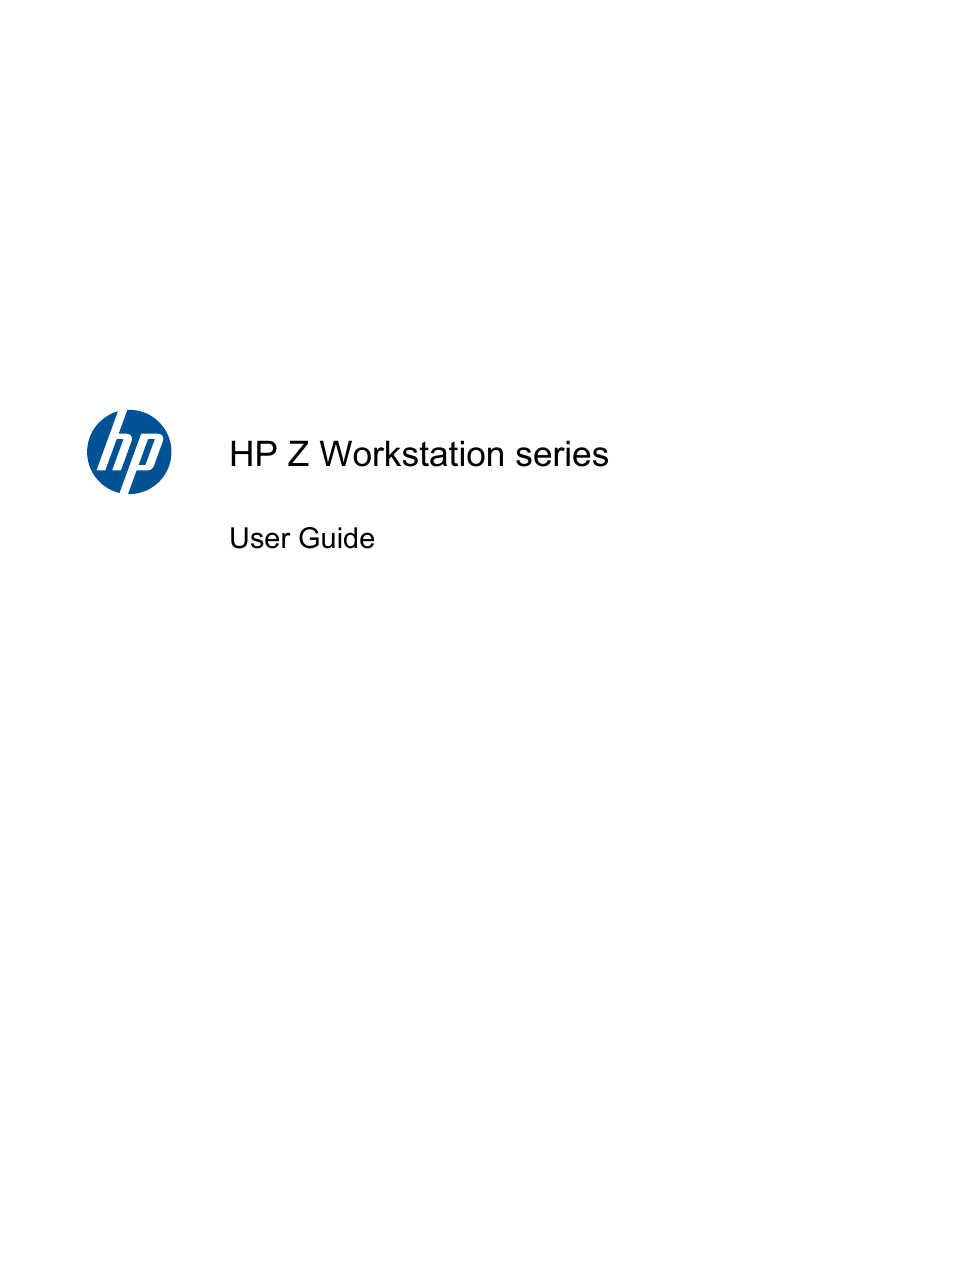 HP Z400 Workstation User Manual | 76 pages | Also for: Z800